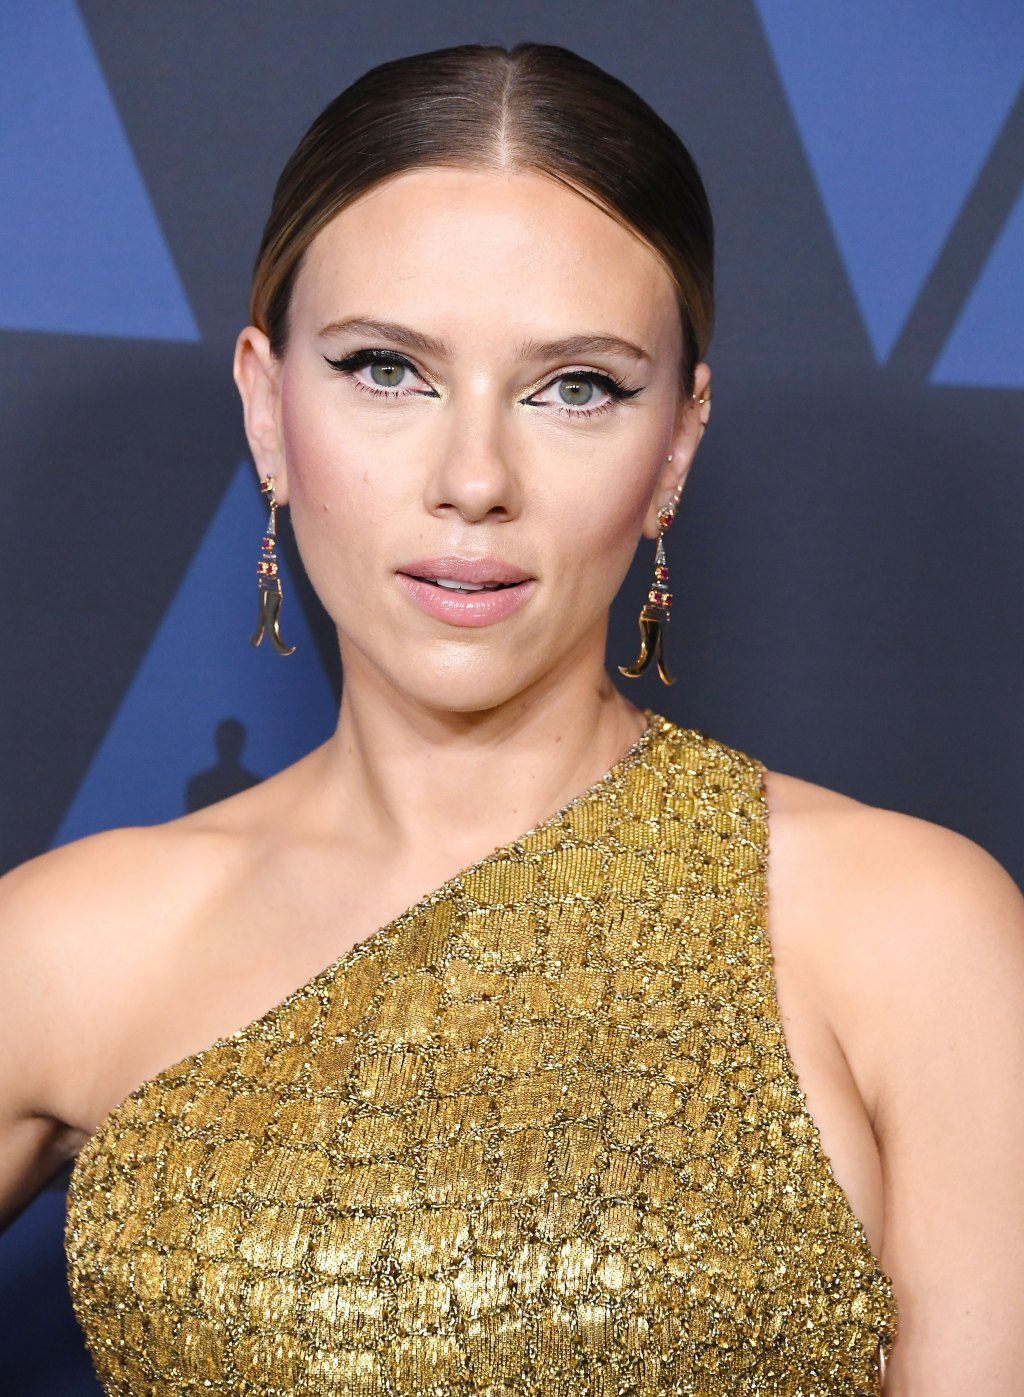 Scarlett Johannson at The 2019 Governor's Ball